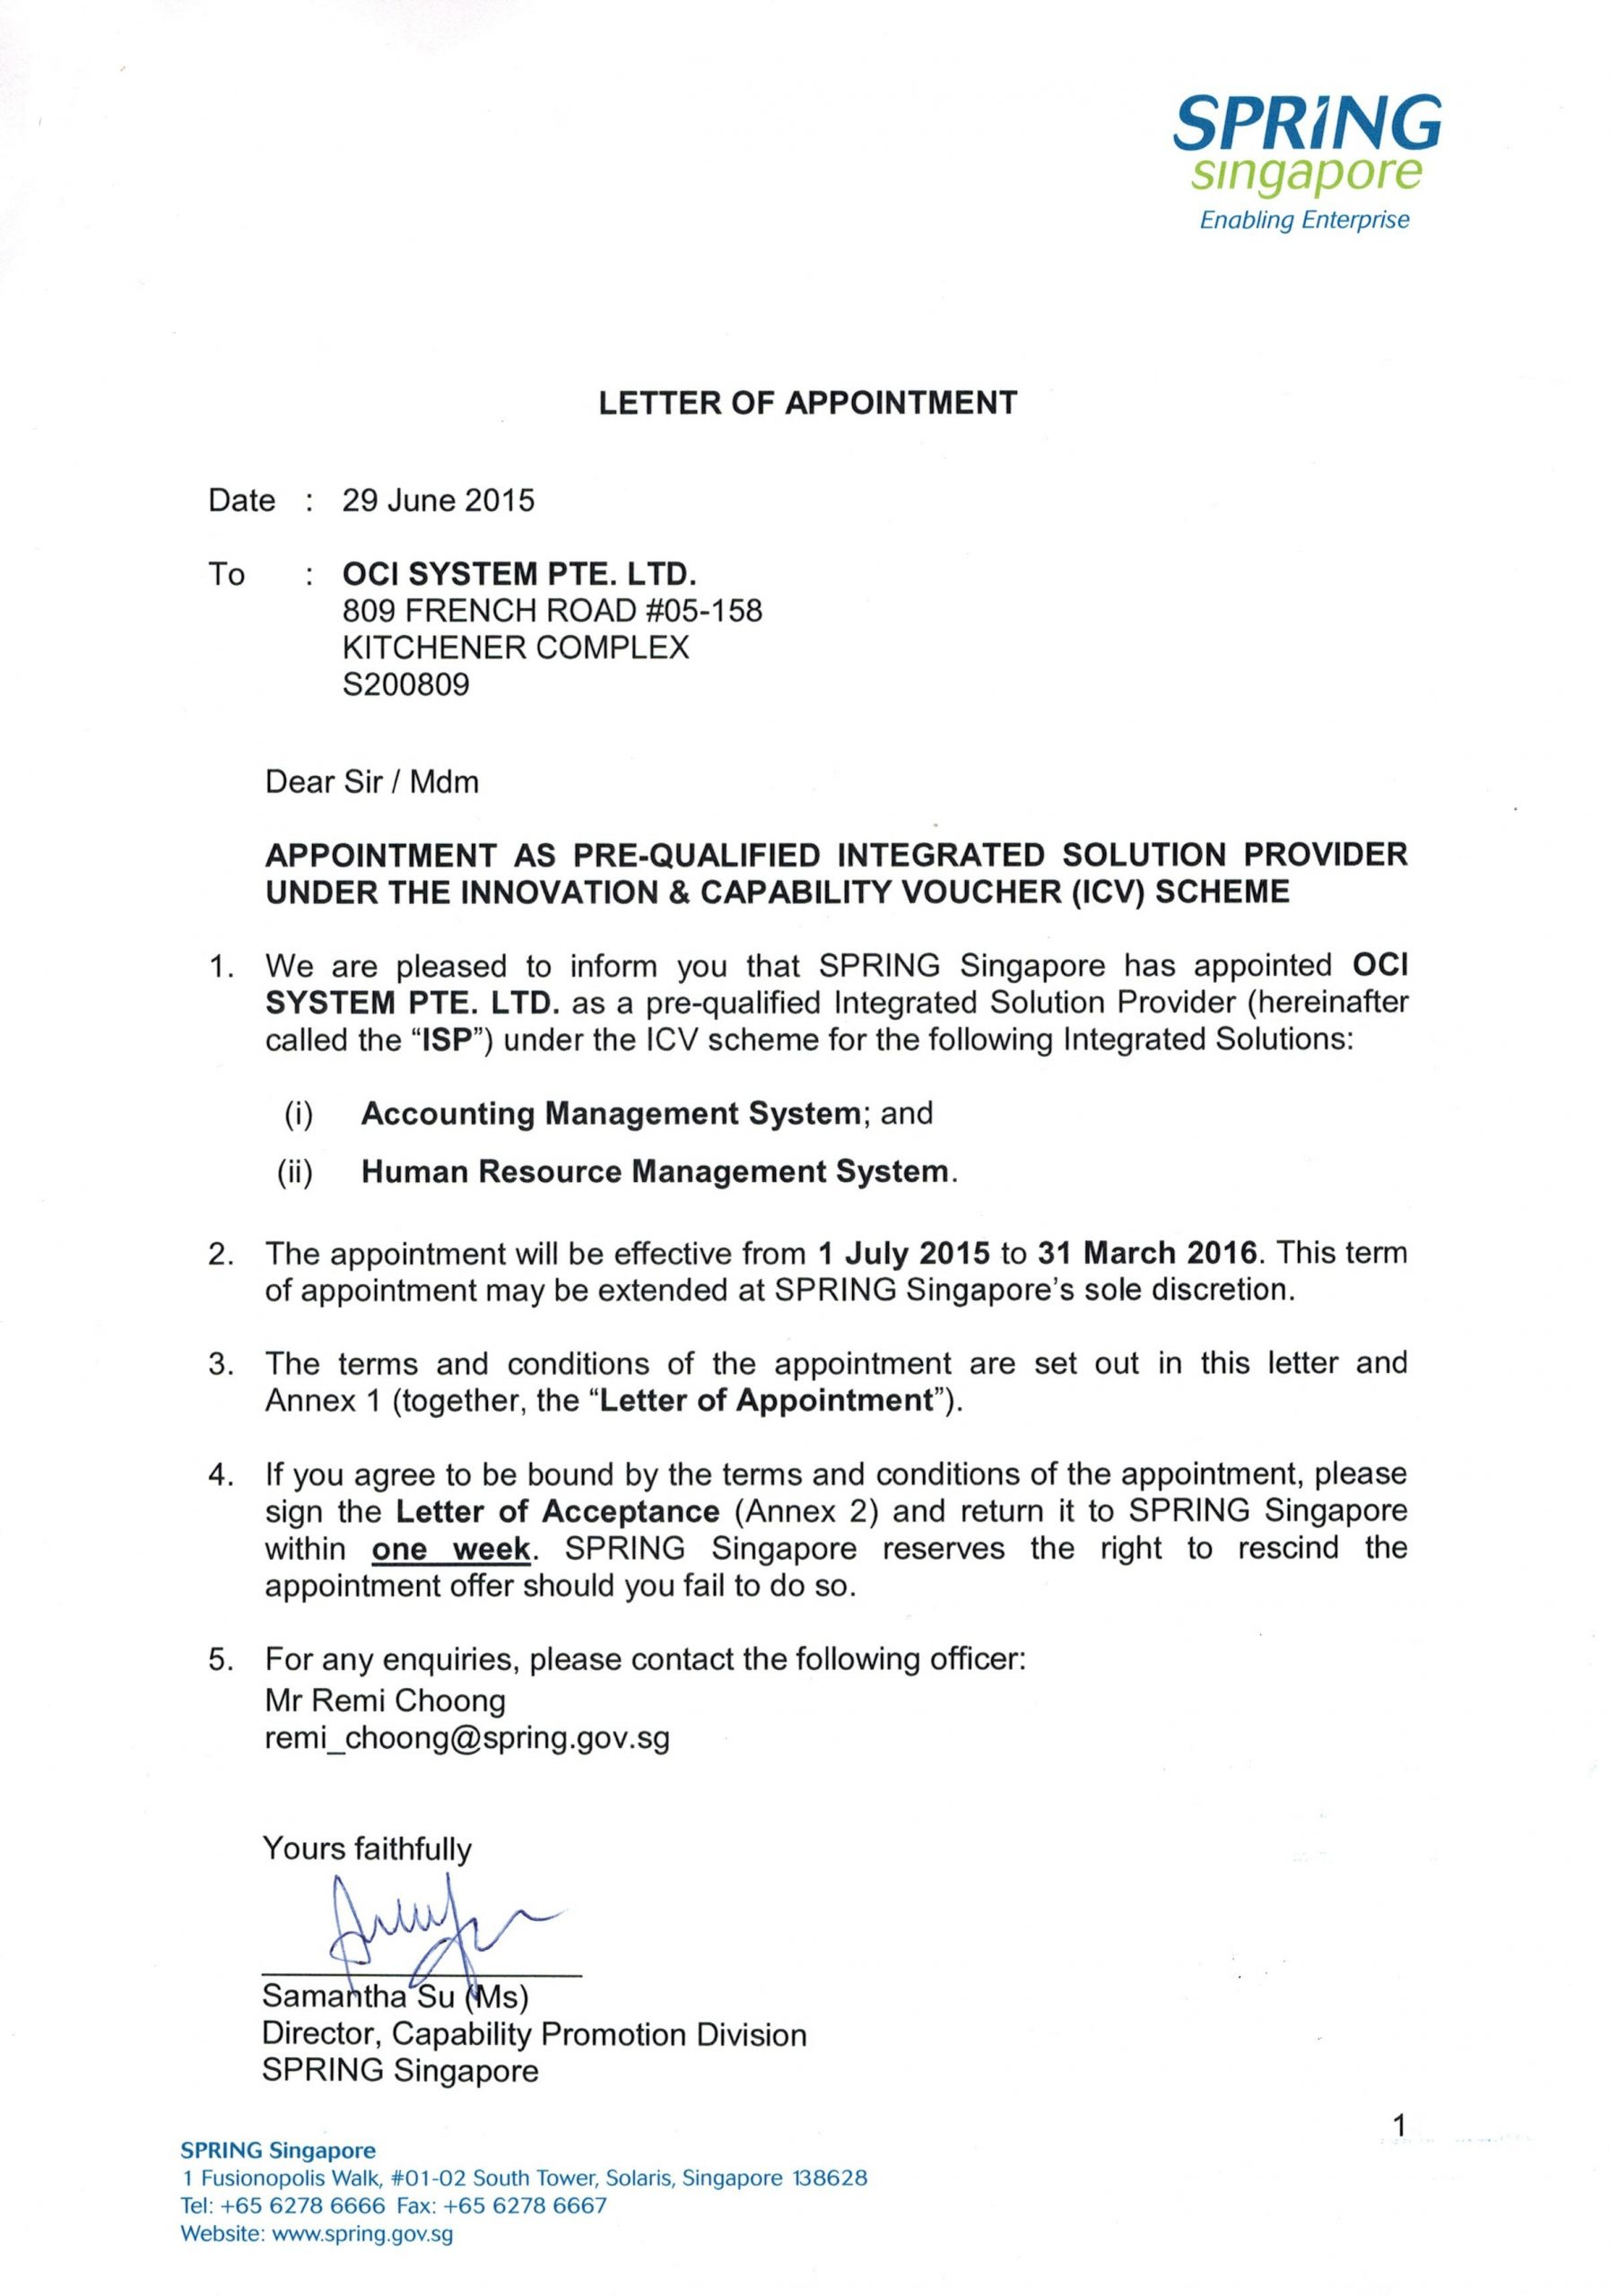 16.1 appointment letter template  16.1 appointment letter template word – DlWord - 16